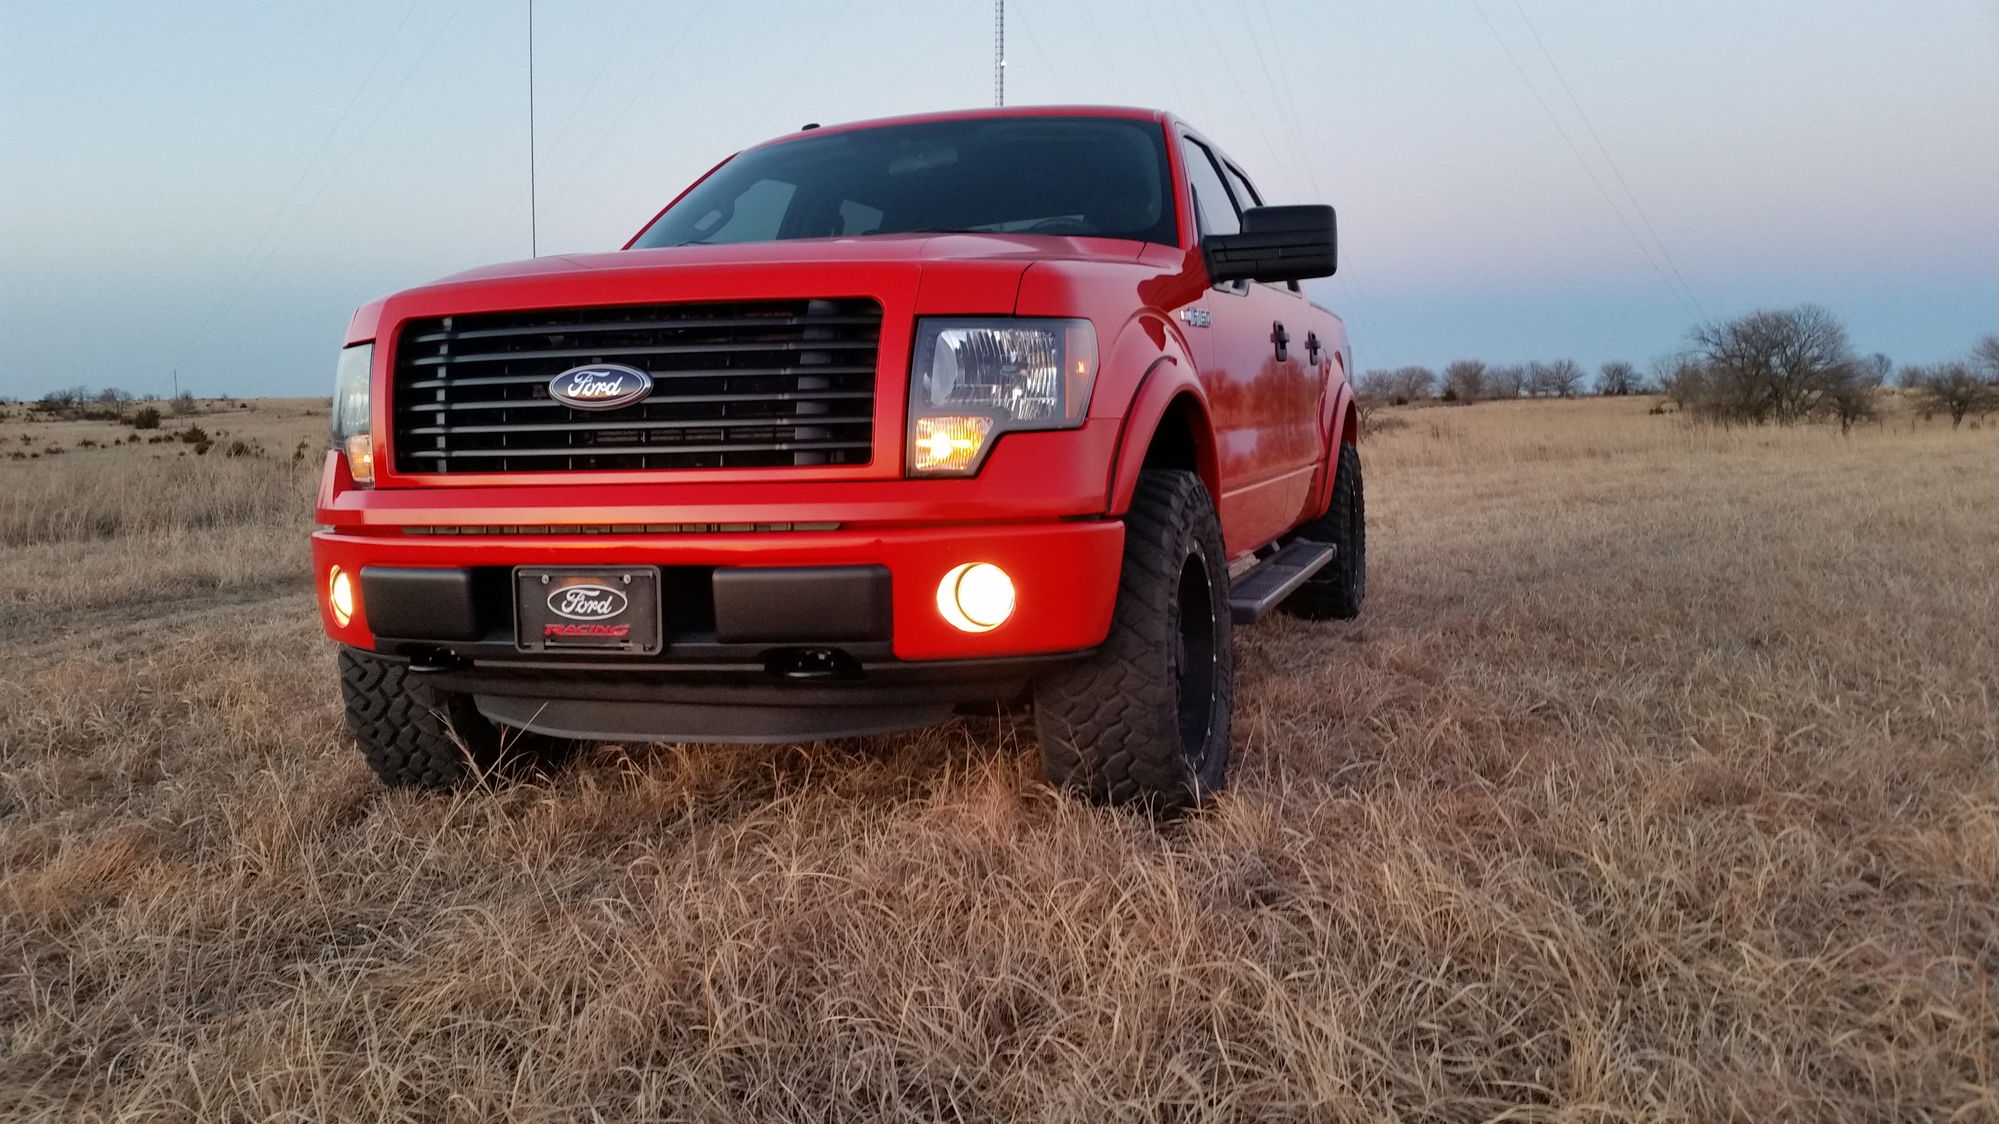 Ptm Lund sx fender flares !!!!! Pic Heavy!!! - Ford F150 ...